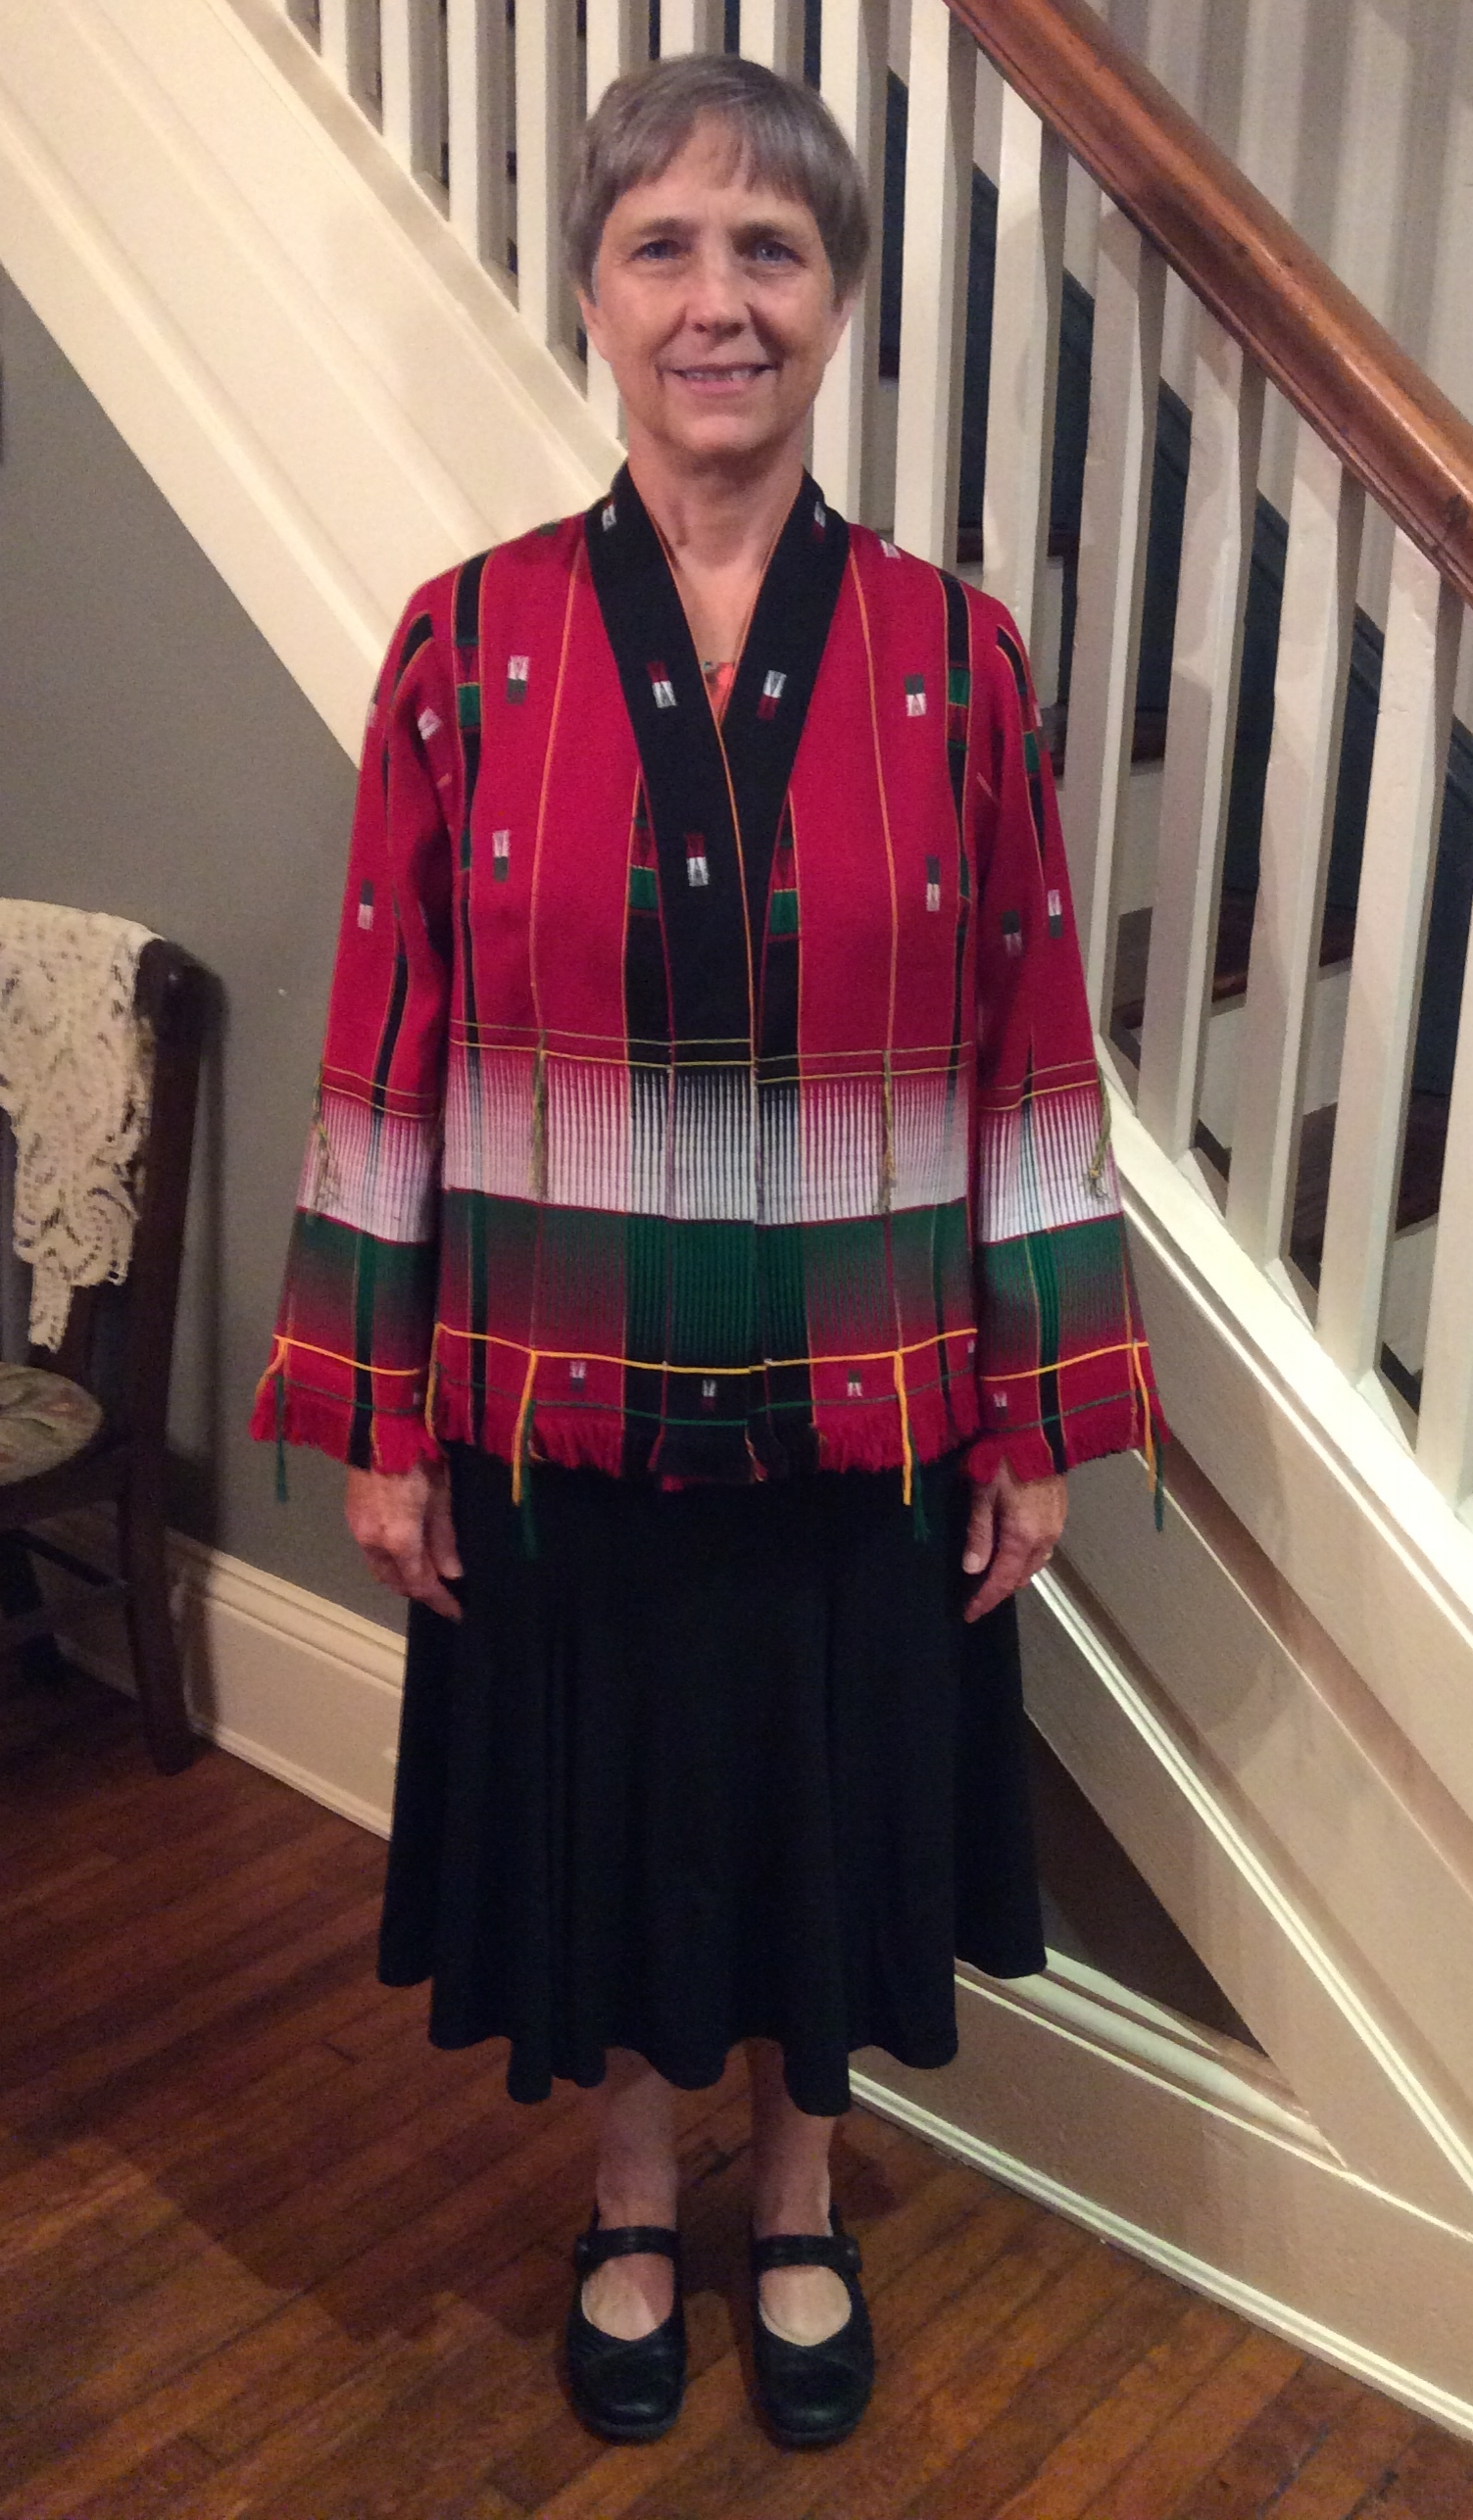 This is a jacket I made my client using fabric she was given from India. The Tabula Rasa Jacket pattern from FitForArt Patterns was perfect for this fabric.